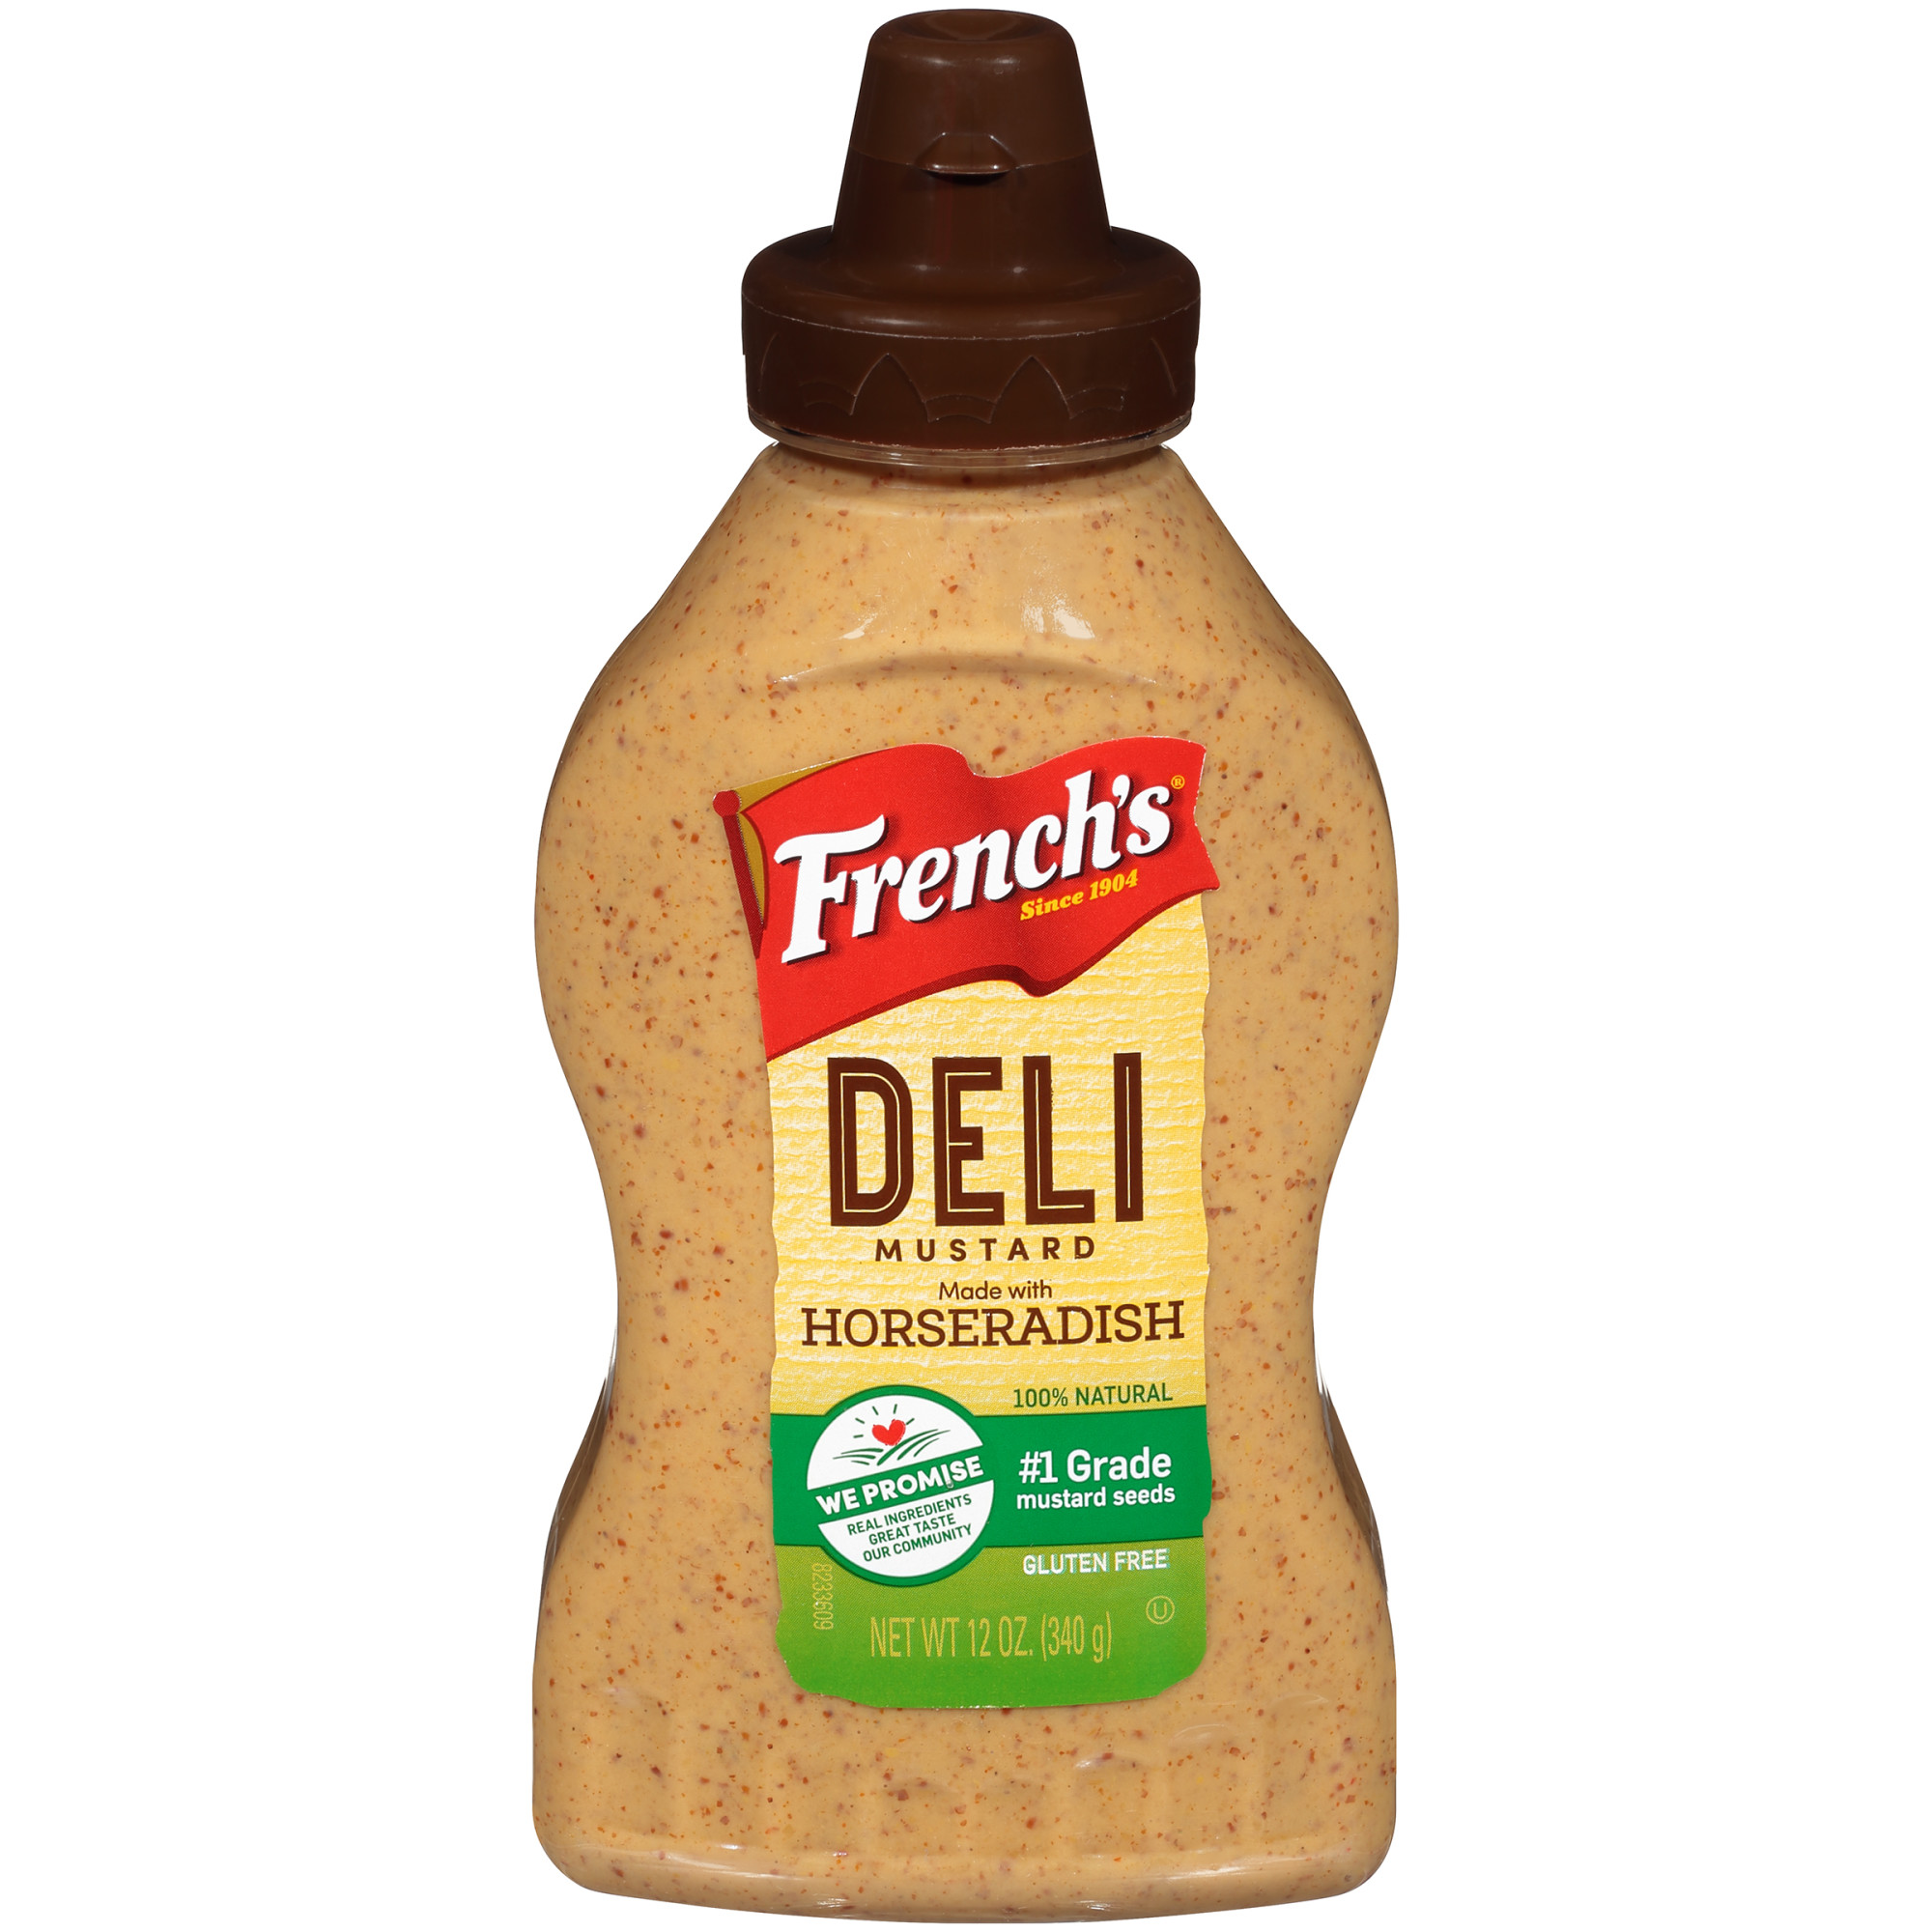 French's Horseradish Deli Mustard Squeeze Bottle, 12 oz